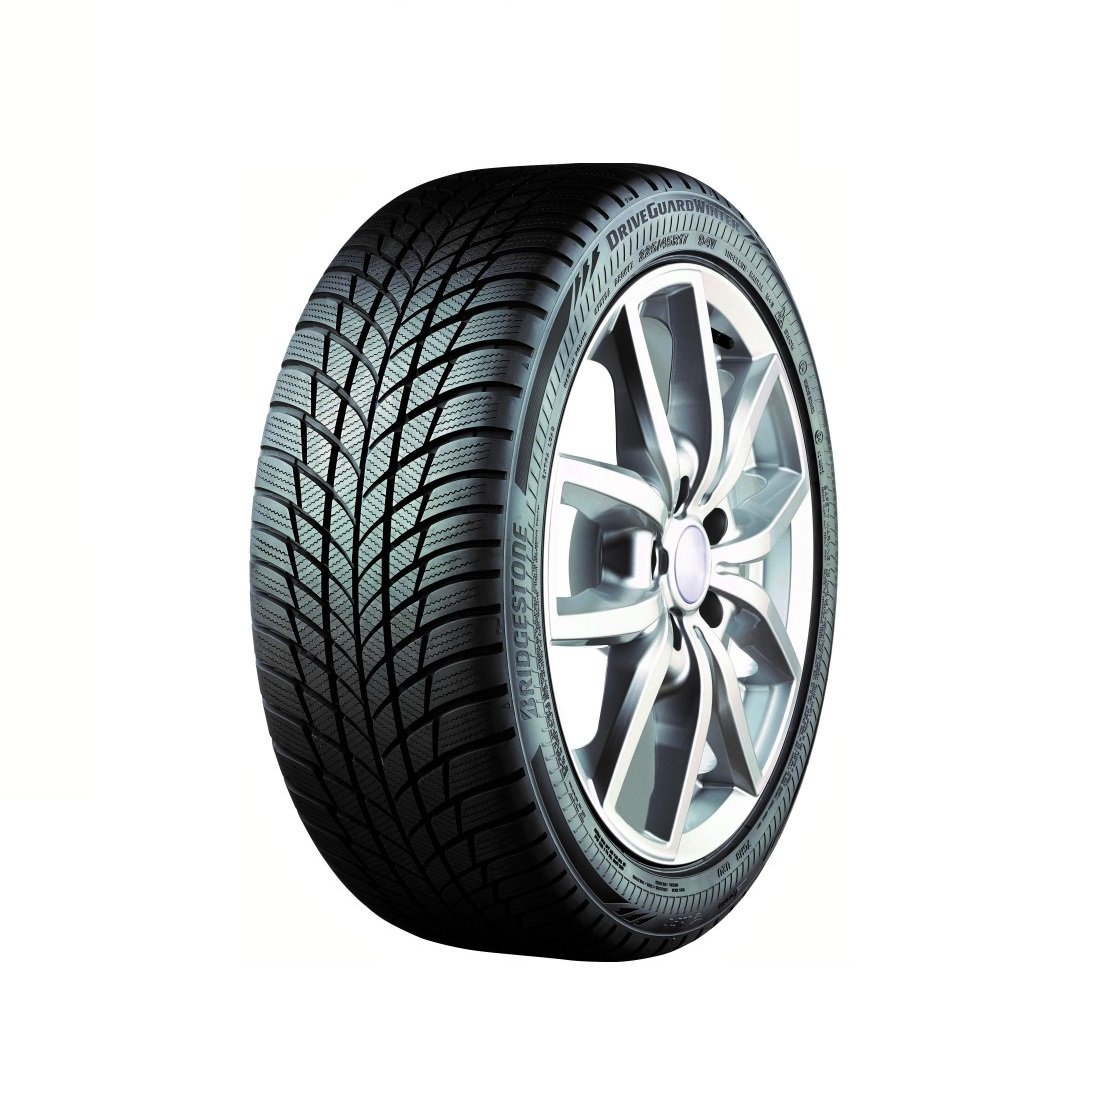 Bridgestone DriveGuard Winter RFT - 195/65/R15 95H - C/B/72 - Winter Tire 195/65 R15